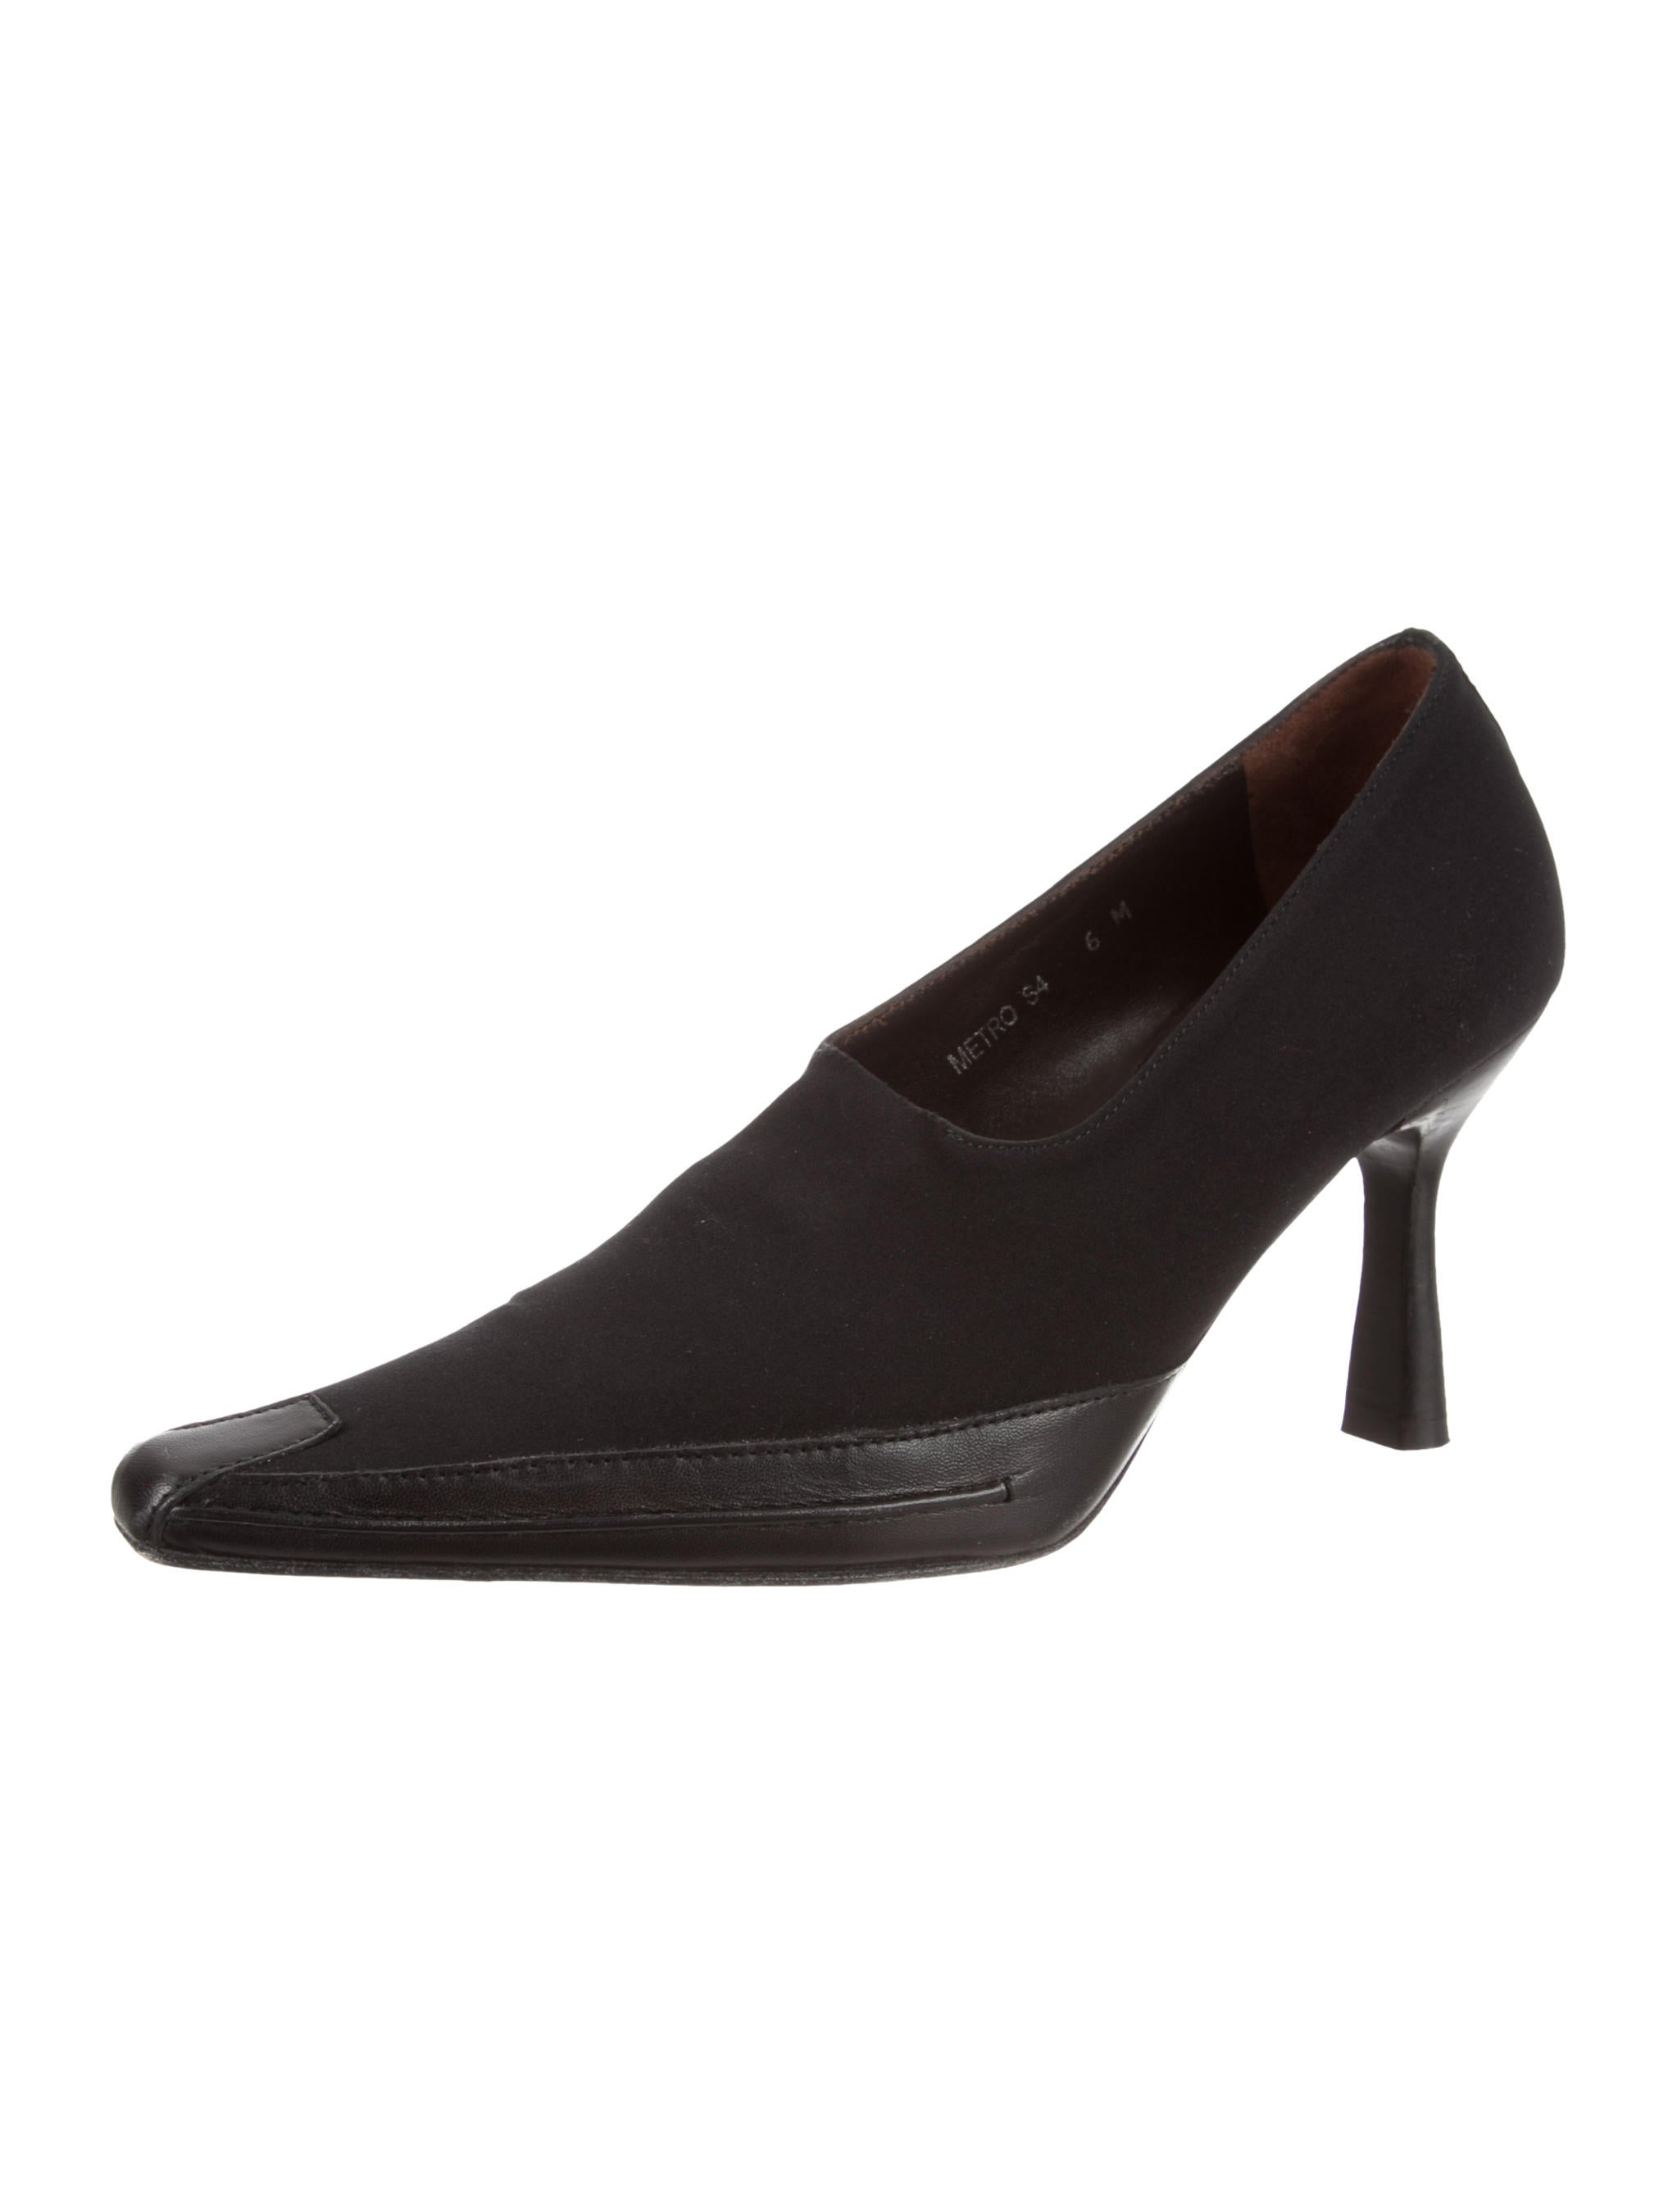 extremely cheap price low price for sale Donald J Pliner Woven Square-Toe Pumps cheap 100% guaranteed lrLfuF8e